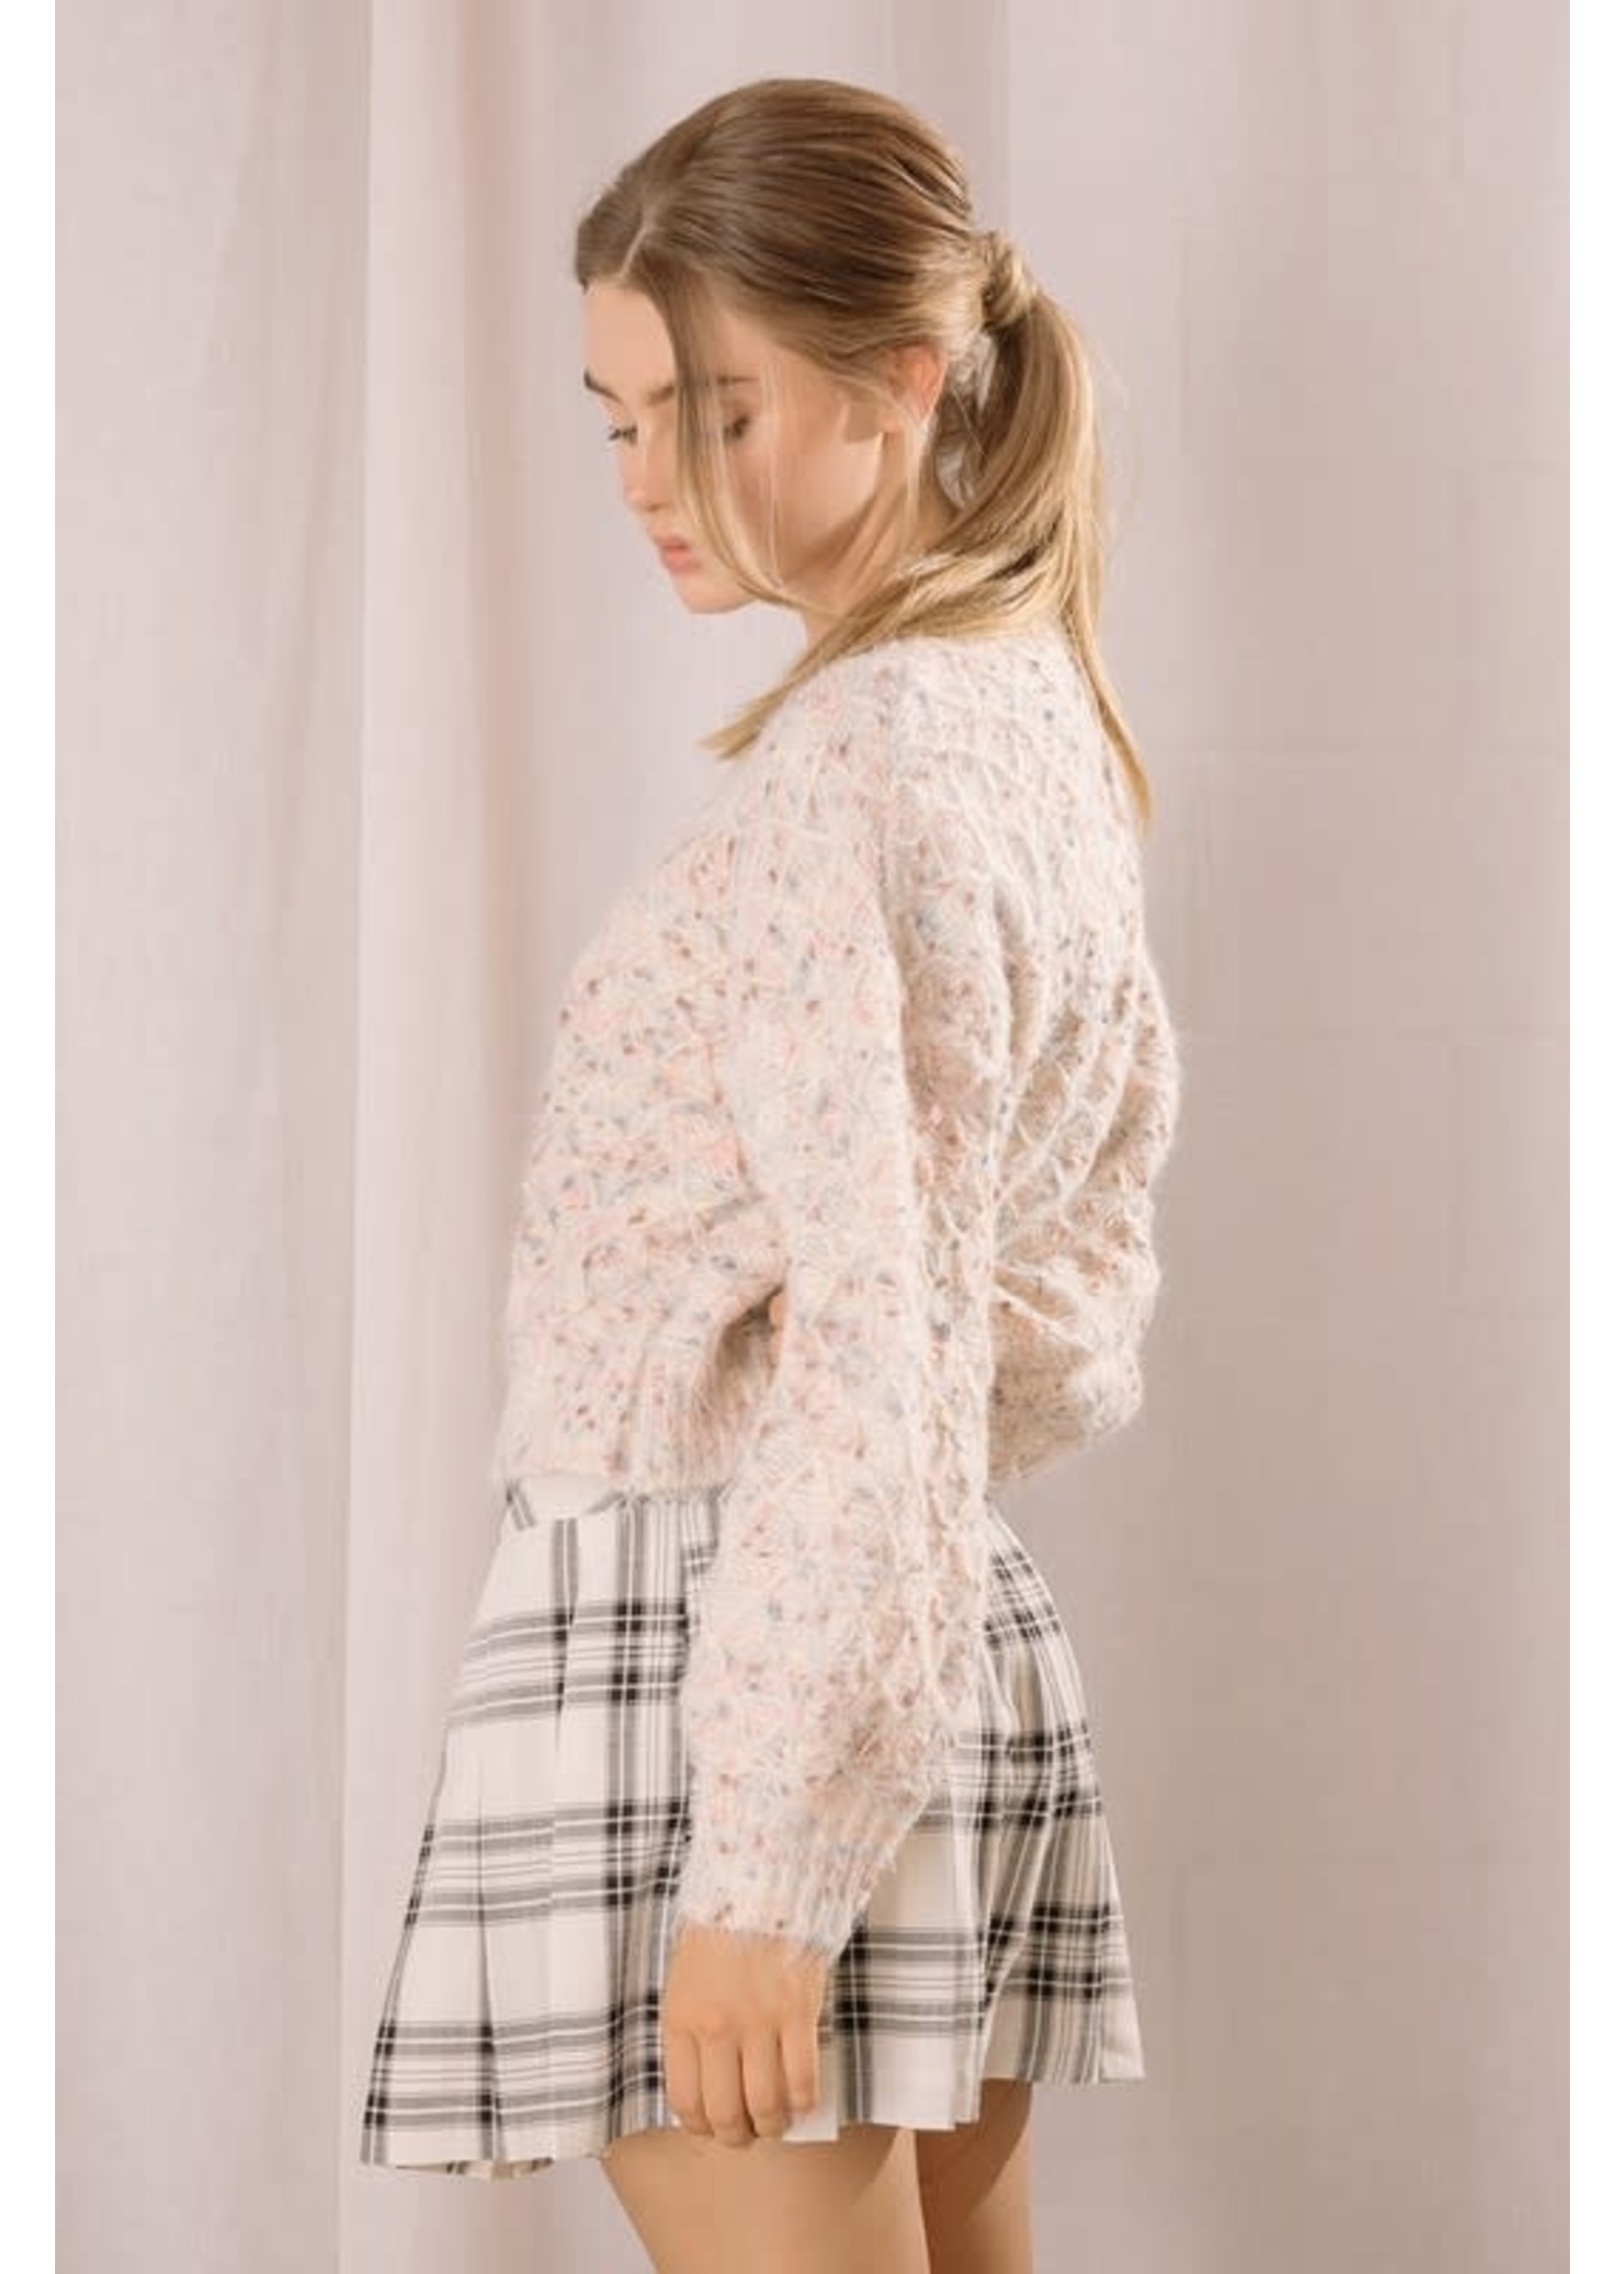 Storia Fuzzy Multicolor Dotted Pullover - BT2656